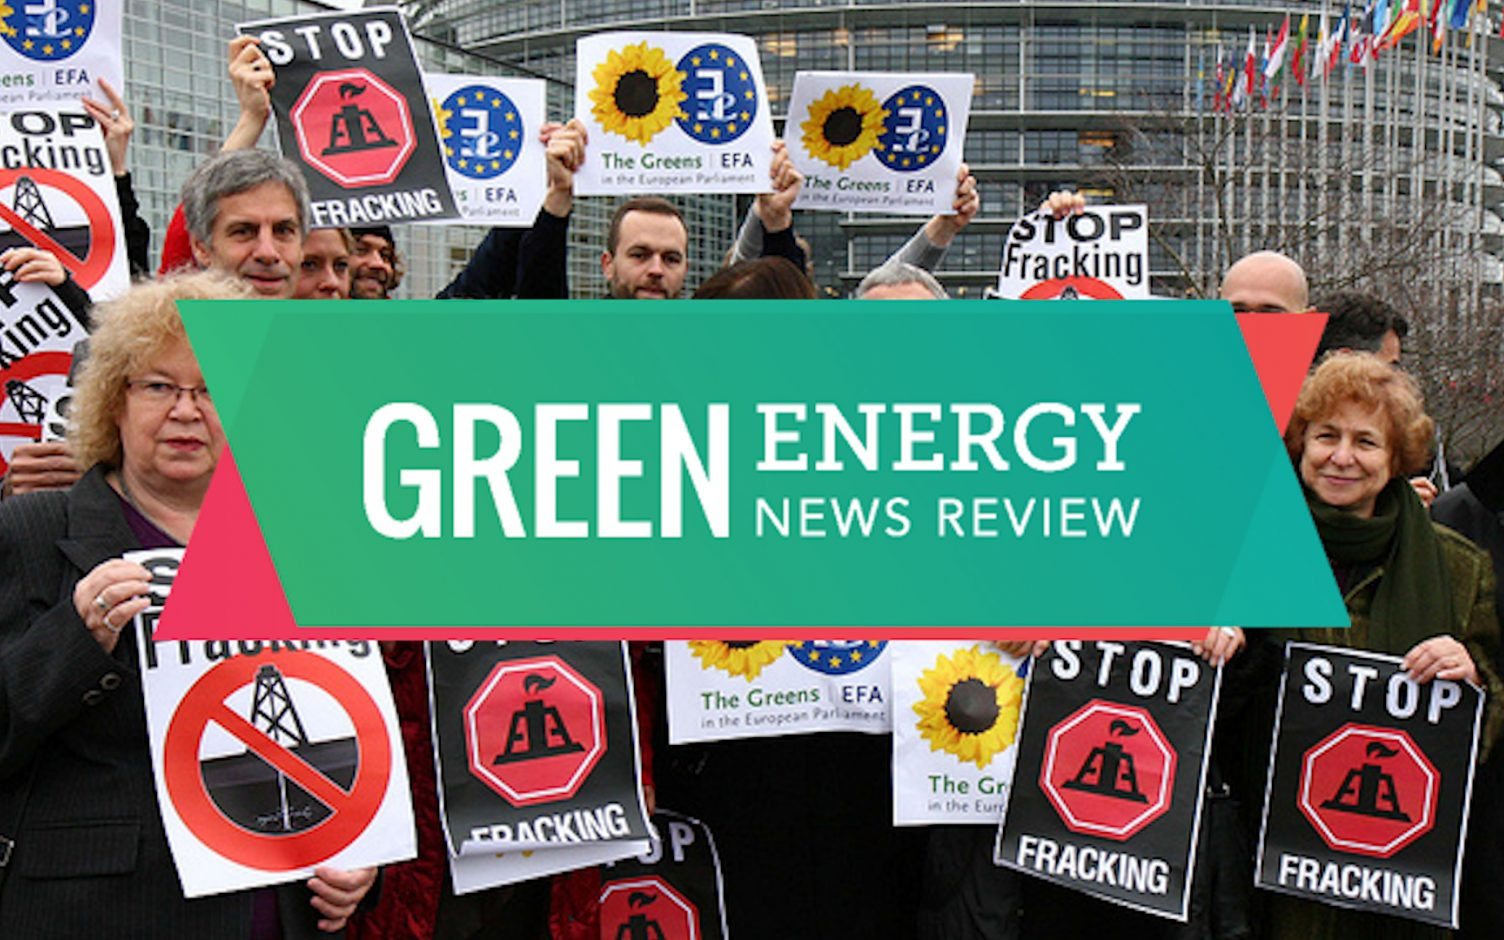 DECC poll shines a light on UK's true opinion of fracking